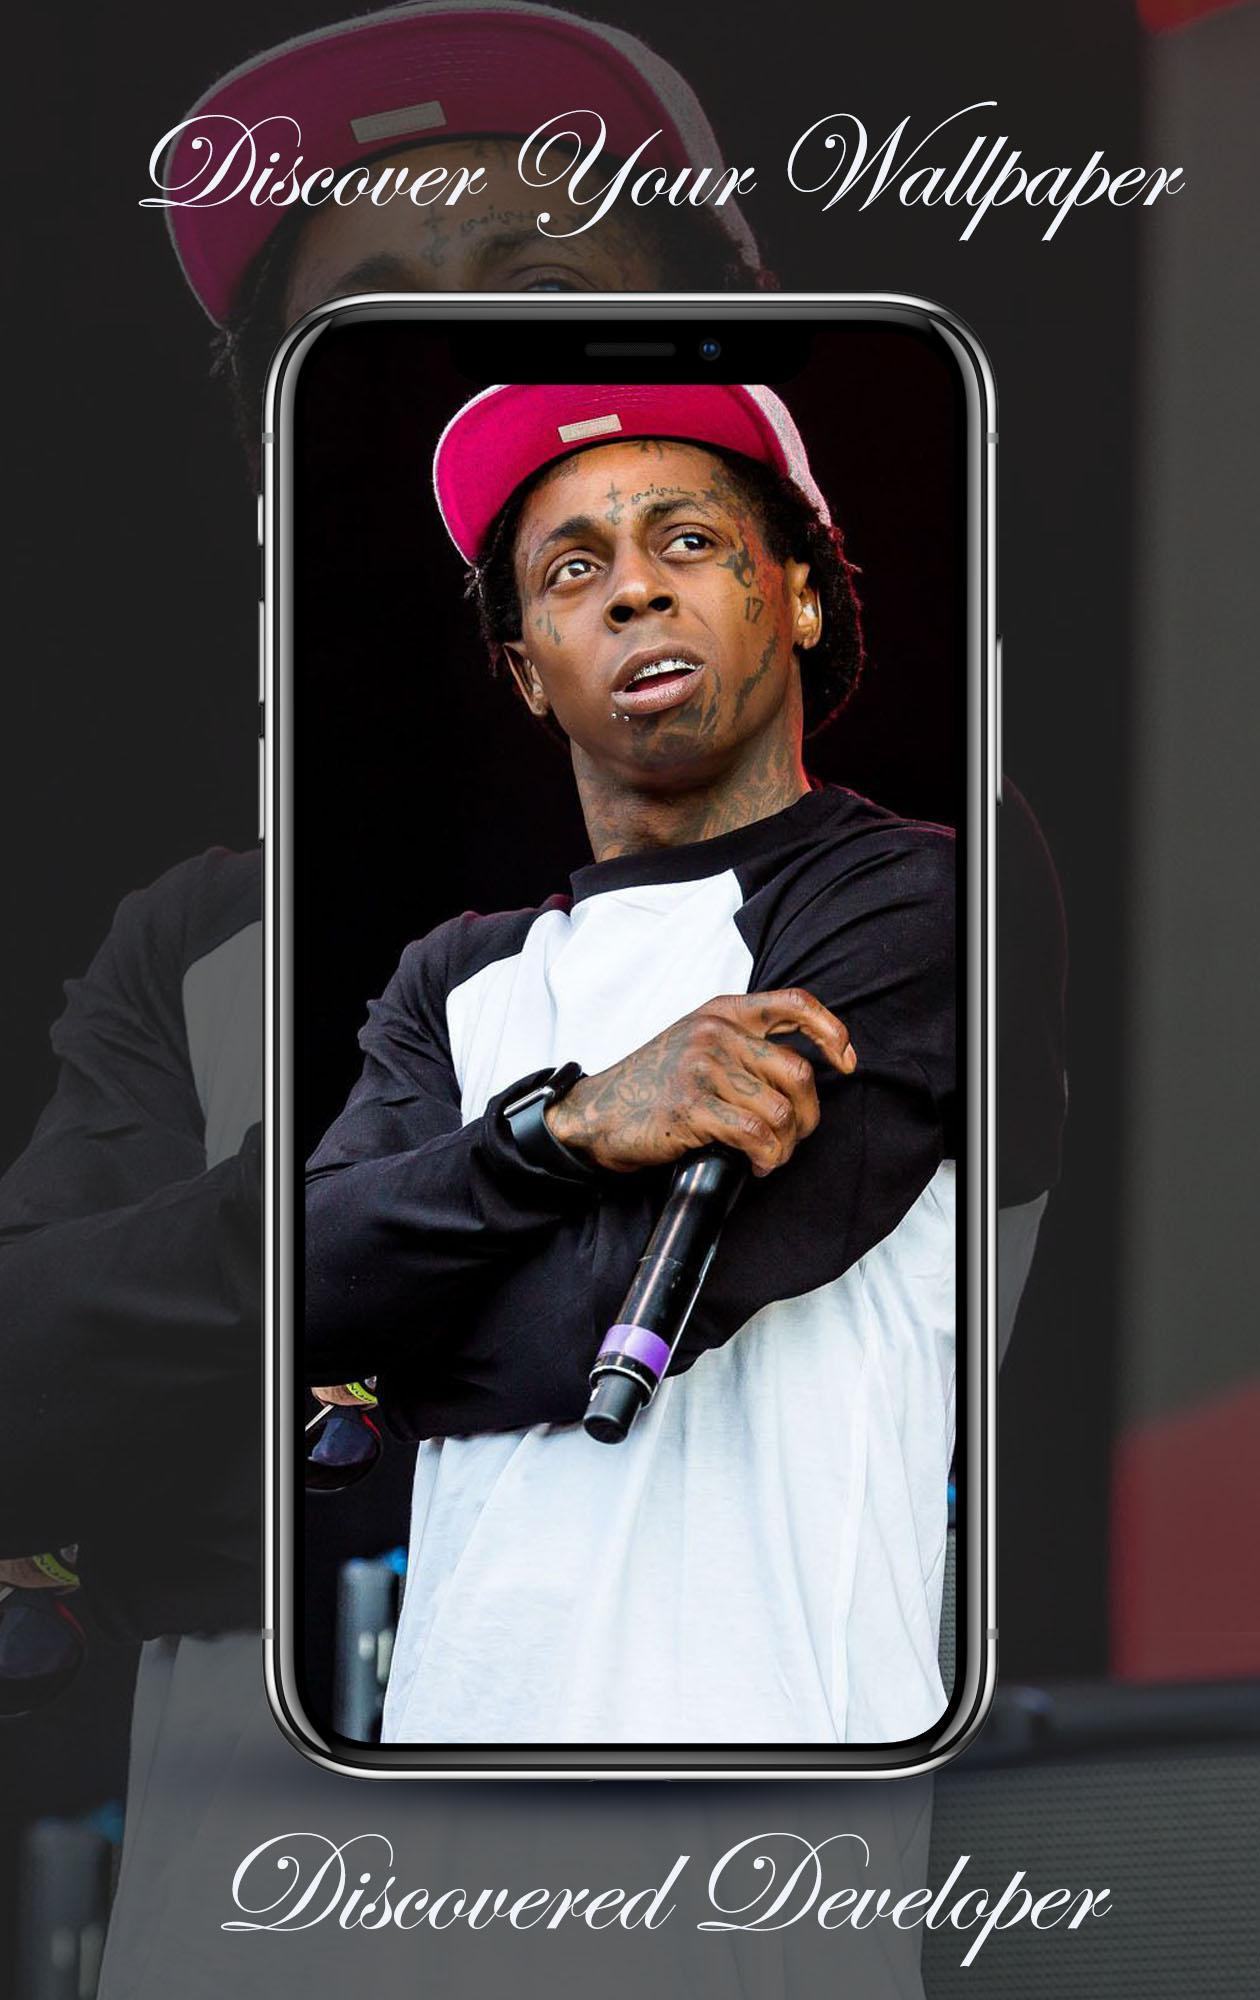 Lil Wayne Wallpaper Hd 4k For Android Apk Download